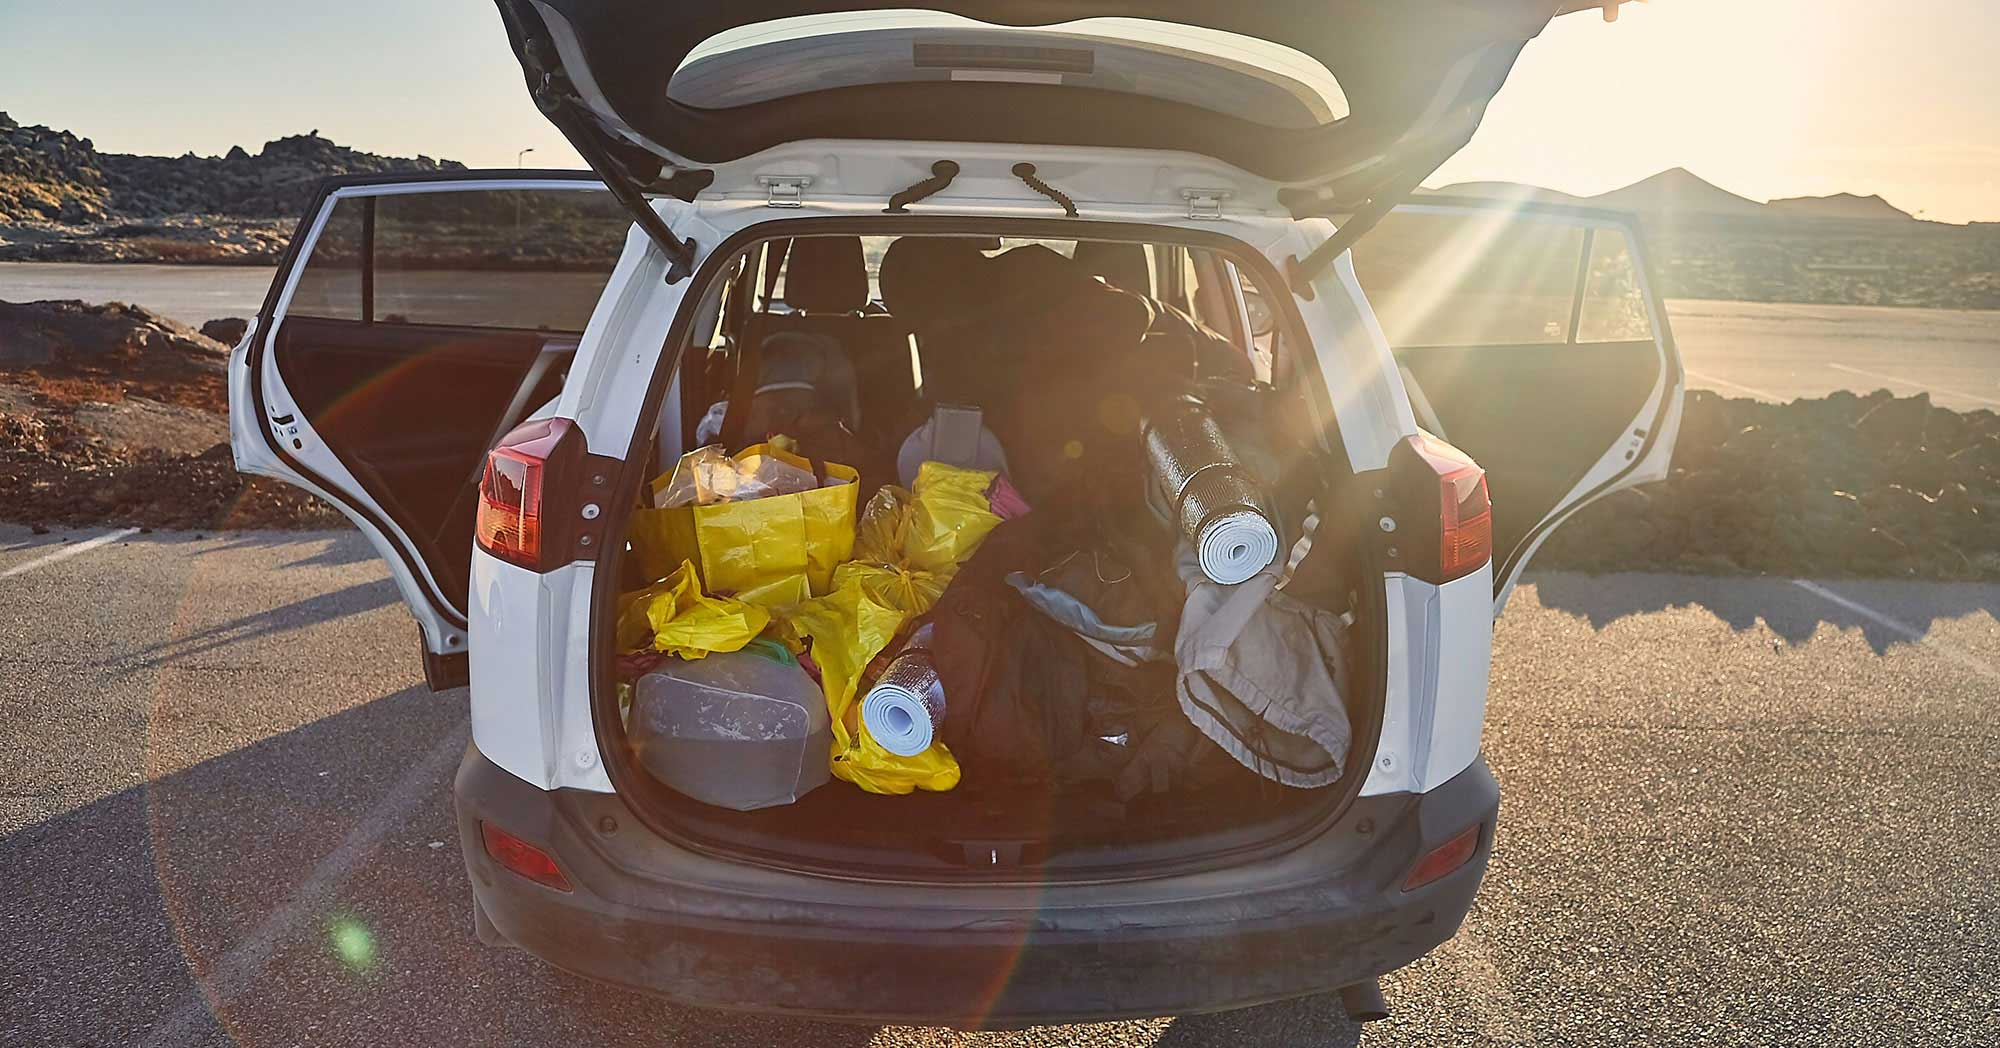 8 Items You Should Never Bring Camping